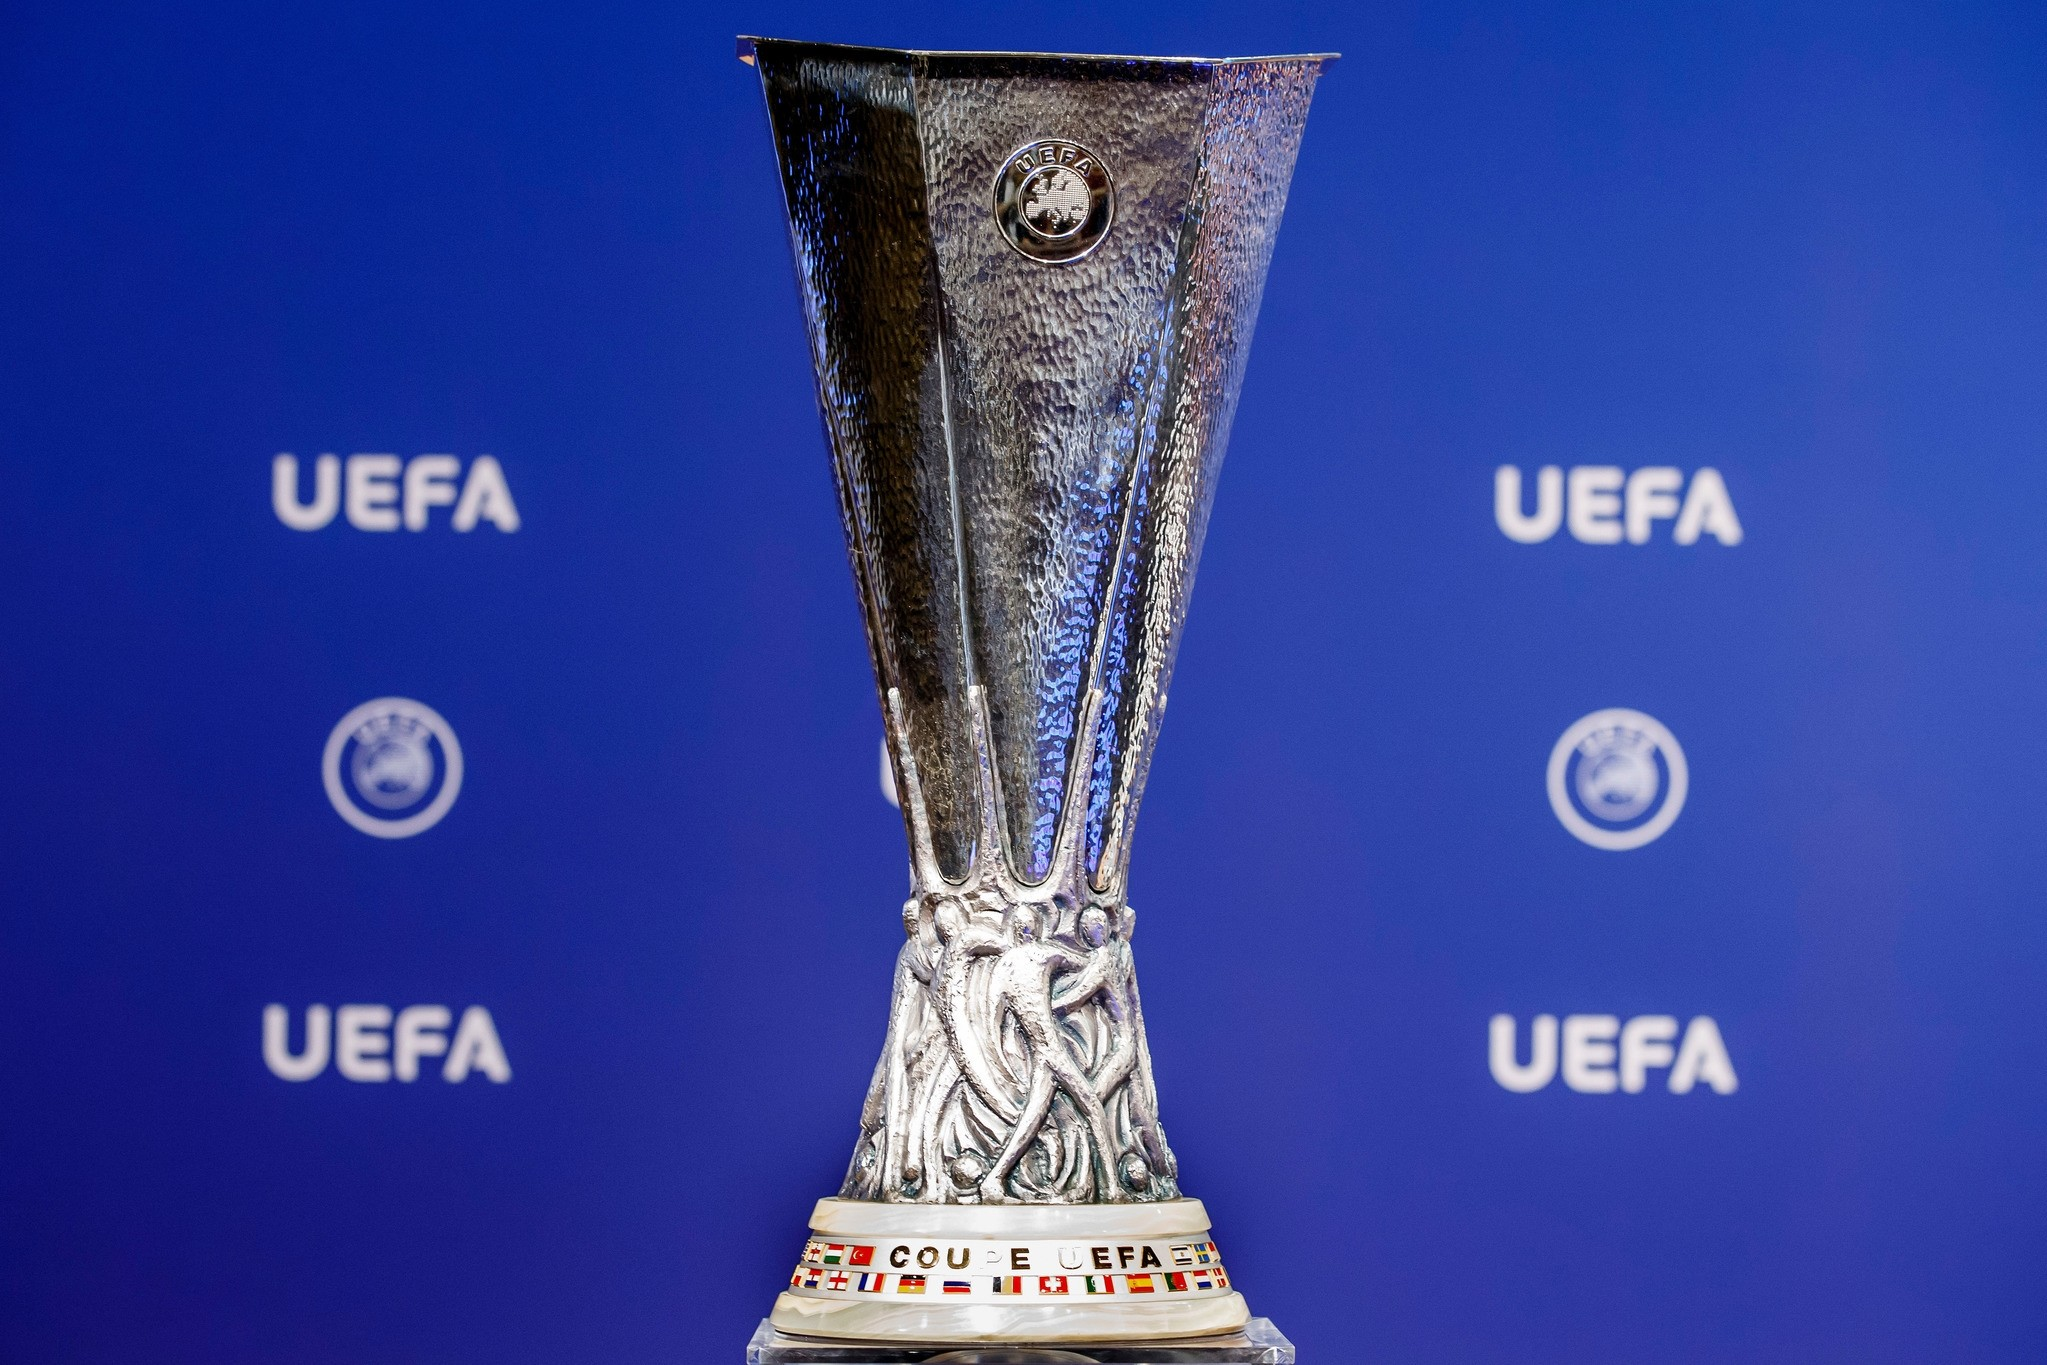 This Monday, June 19, 2017 file photo shows the Europa League trophy during the drawing of the games for the Europa League 2017/18 first qualifying round, at the UEFA headquarters in Nyon, Switzerland. (AP Photo)